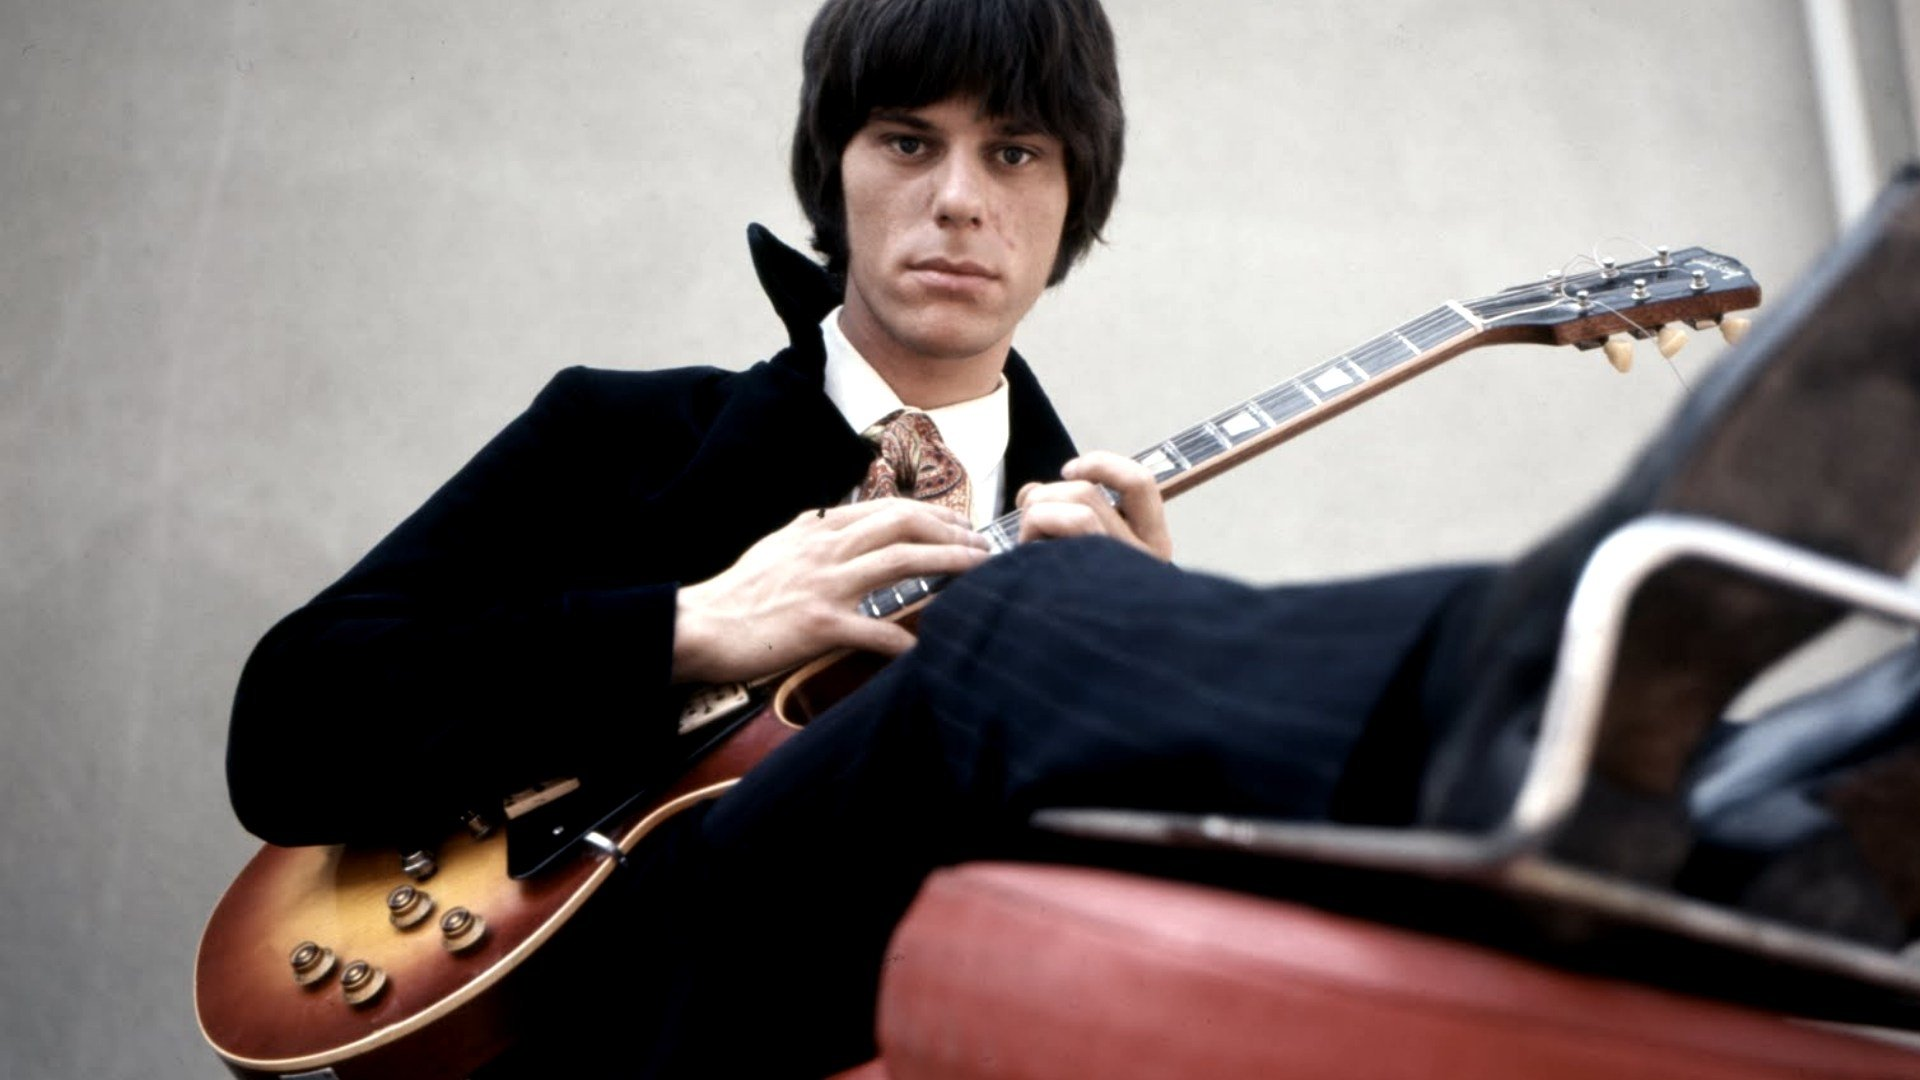 Iphone X Wallpaper Download Live Jeff Beck Full Hd Wallpaper And Background Image